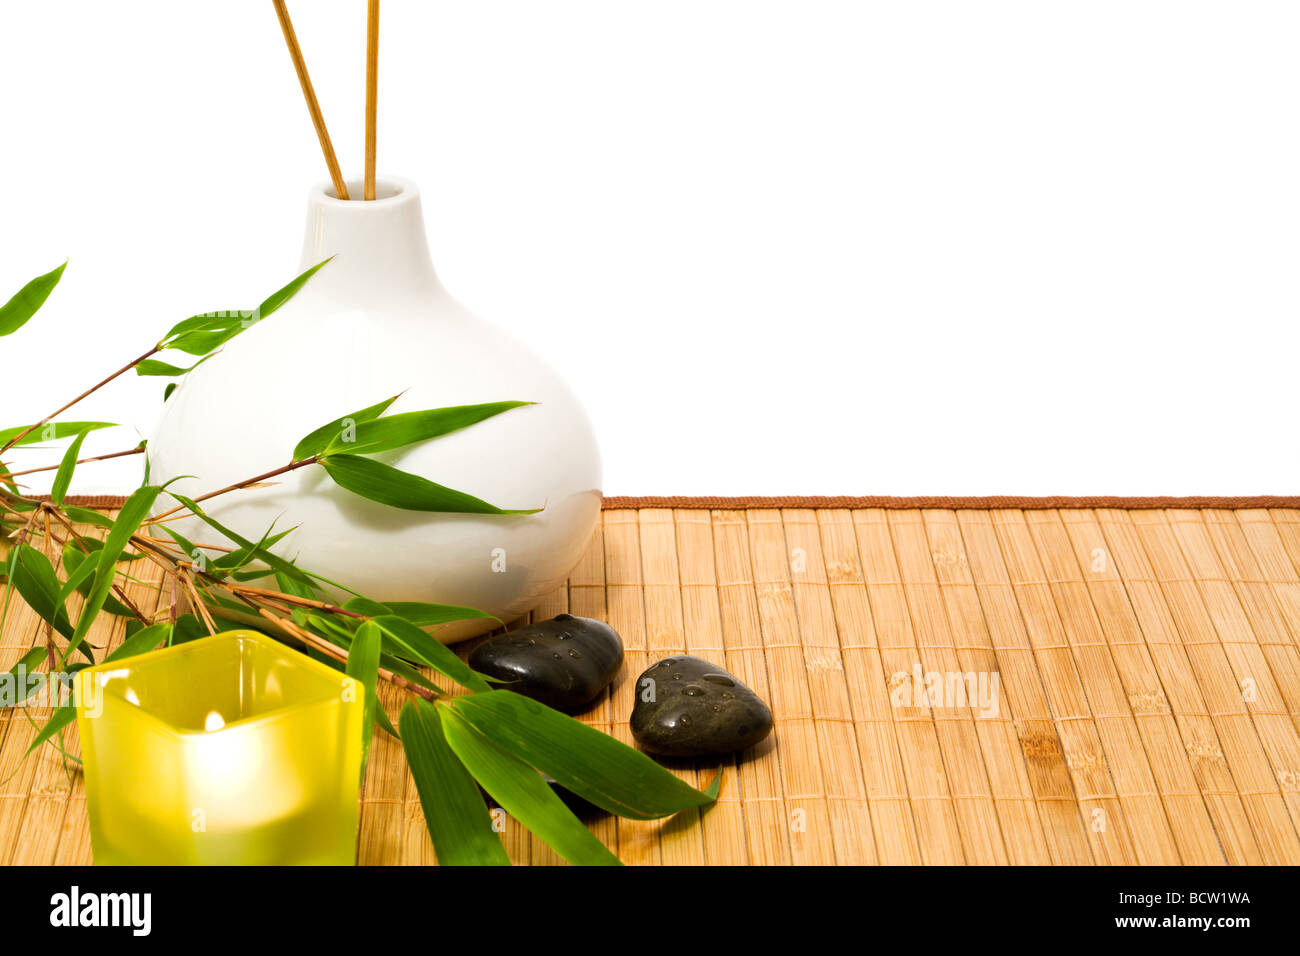 spa and wellness still-life with bamboo branch, candle, stones, vase with incense sticks, cutout - Stock Image